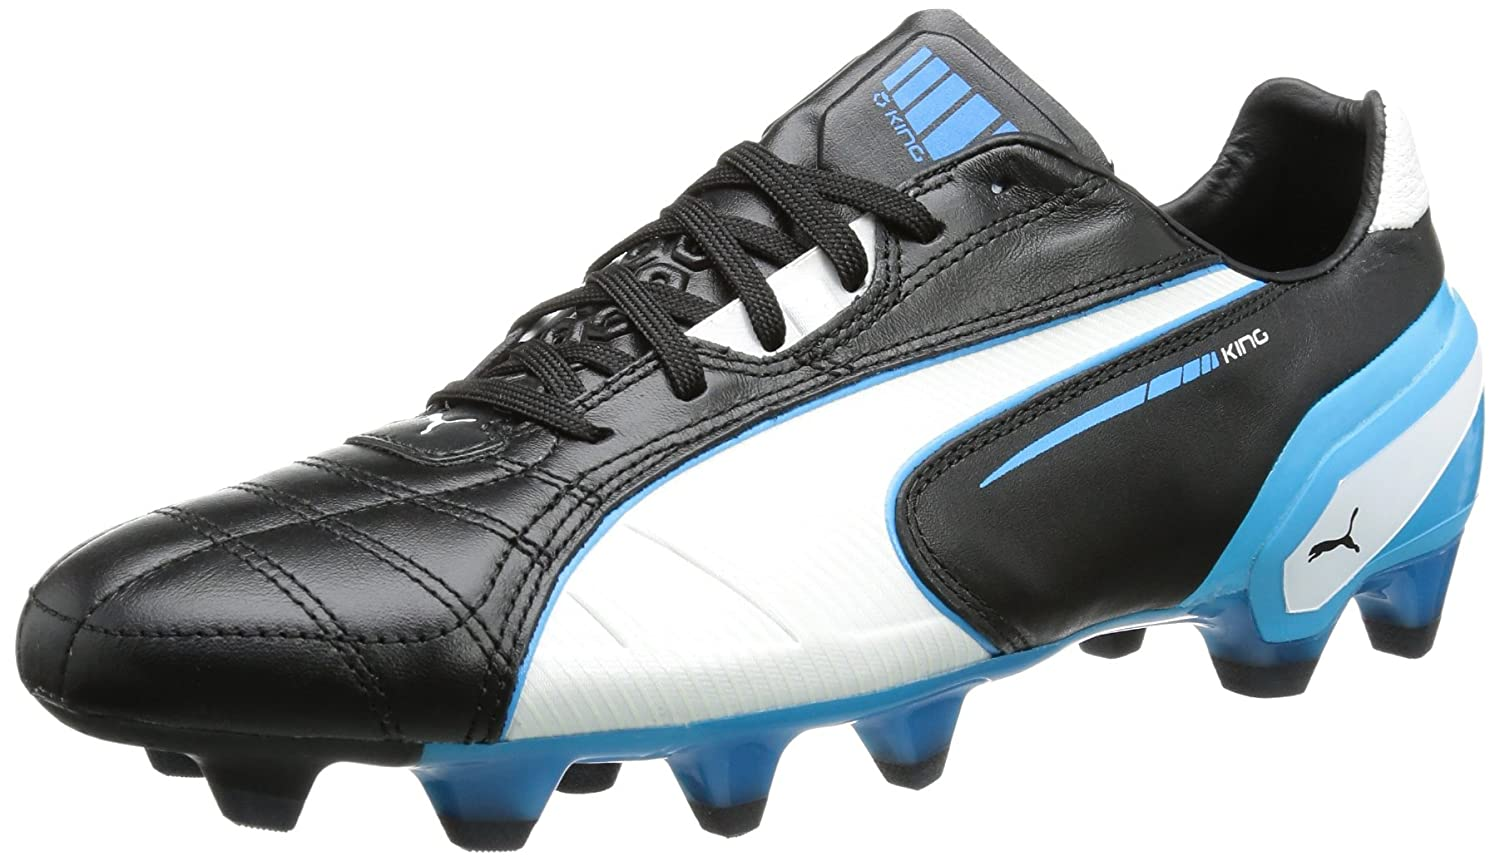 6b0ccb27dbd Puma King Fg, Men's Football Boots